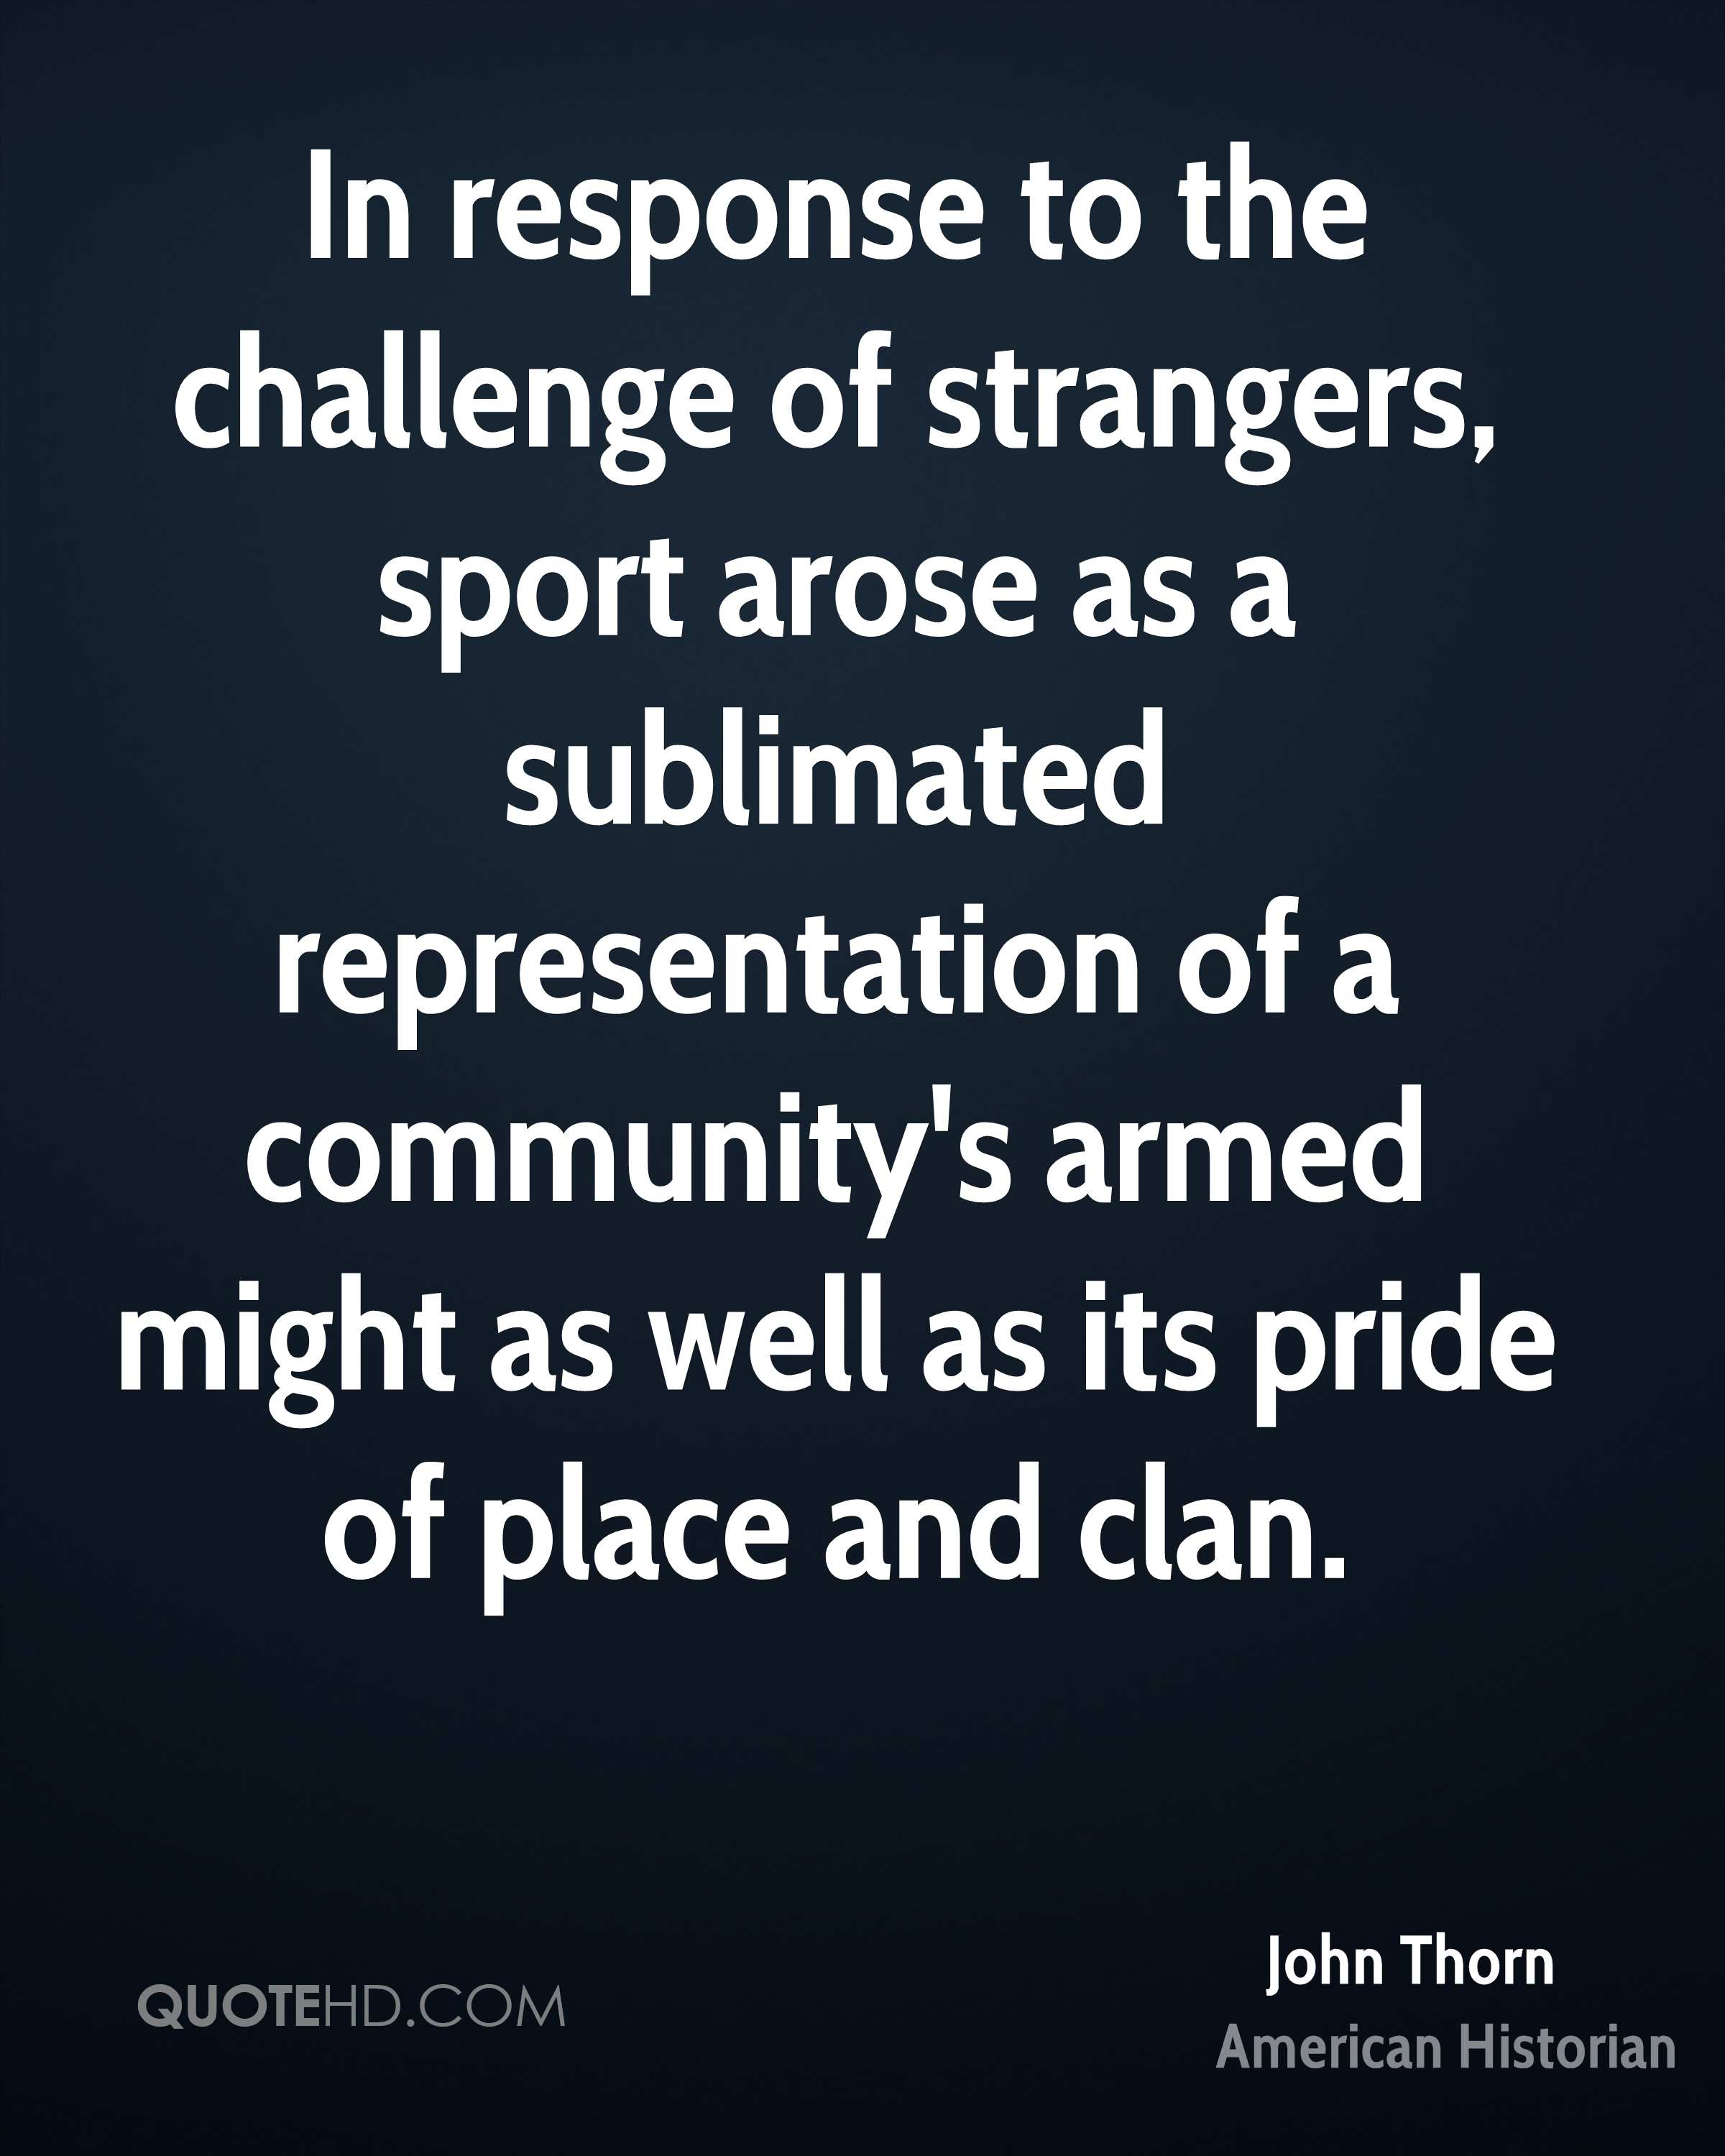 In response to the challenge of strangers, sport arose as a sublimated representation of a community's armed might as well as its pride of place and clan.